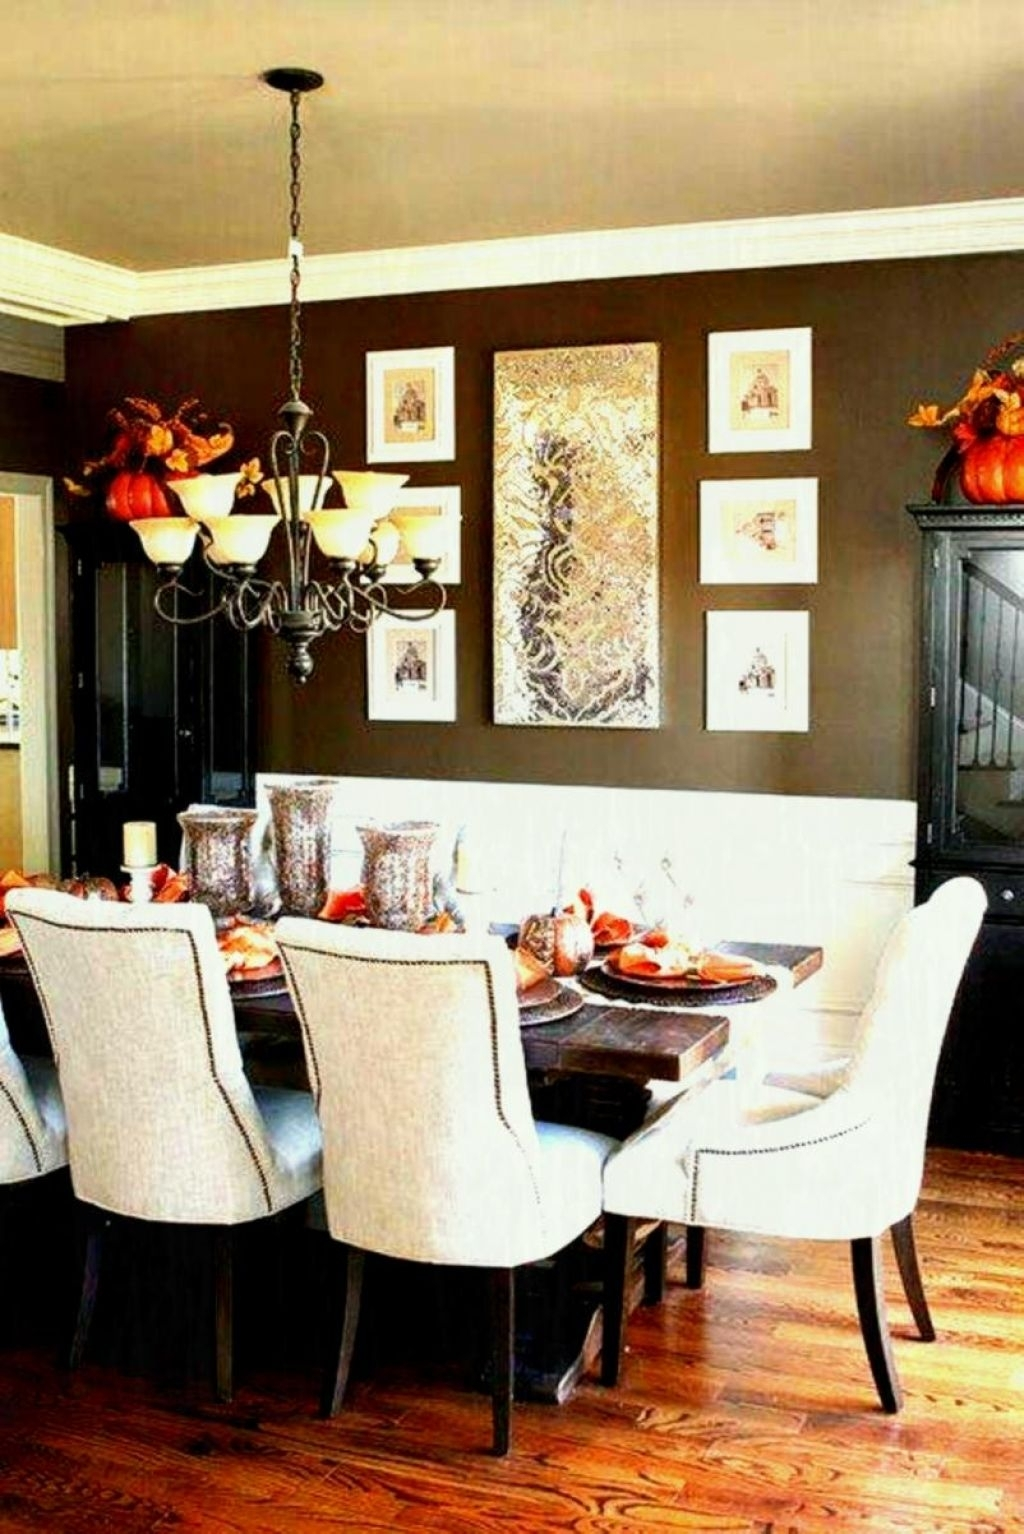 Wall Decor For Dining Room Best Of Decoration Of Dining Room Throughout Most Current Dining Room Wall Art (View 15 of 15)